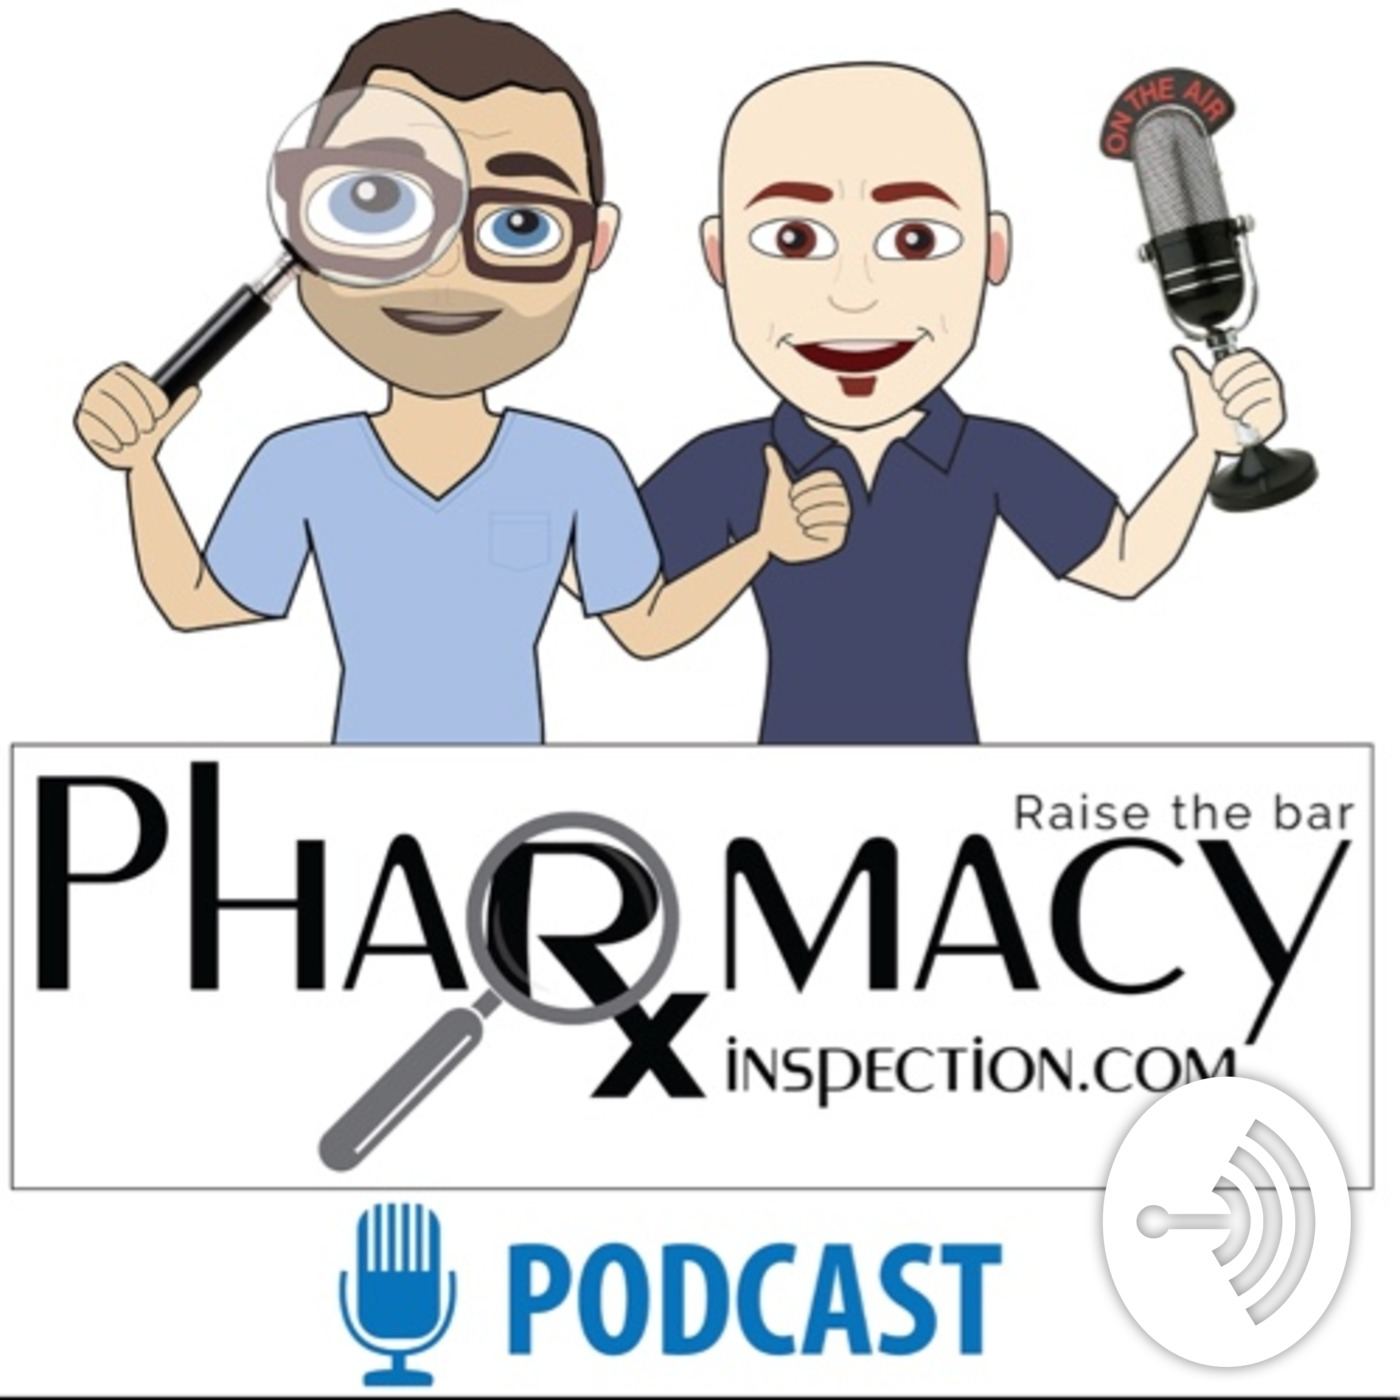 Pharmacy Inspection Podcast - Episode 30 - USP <800> Designated Person